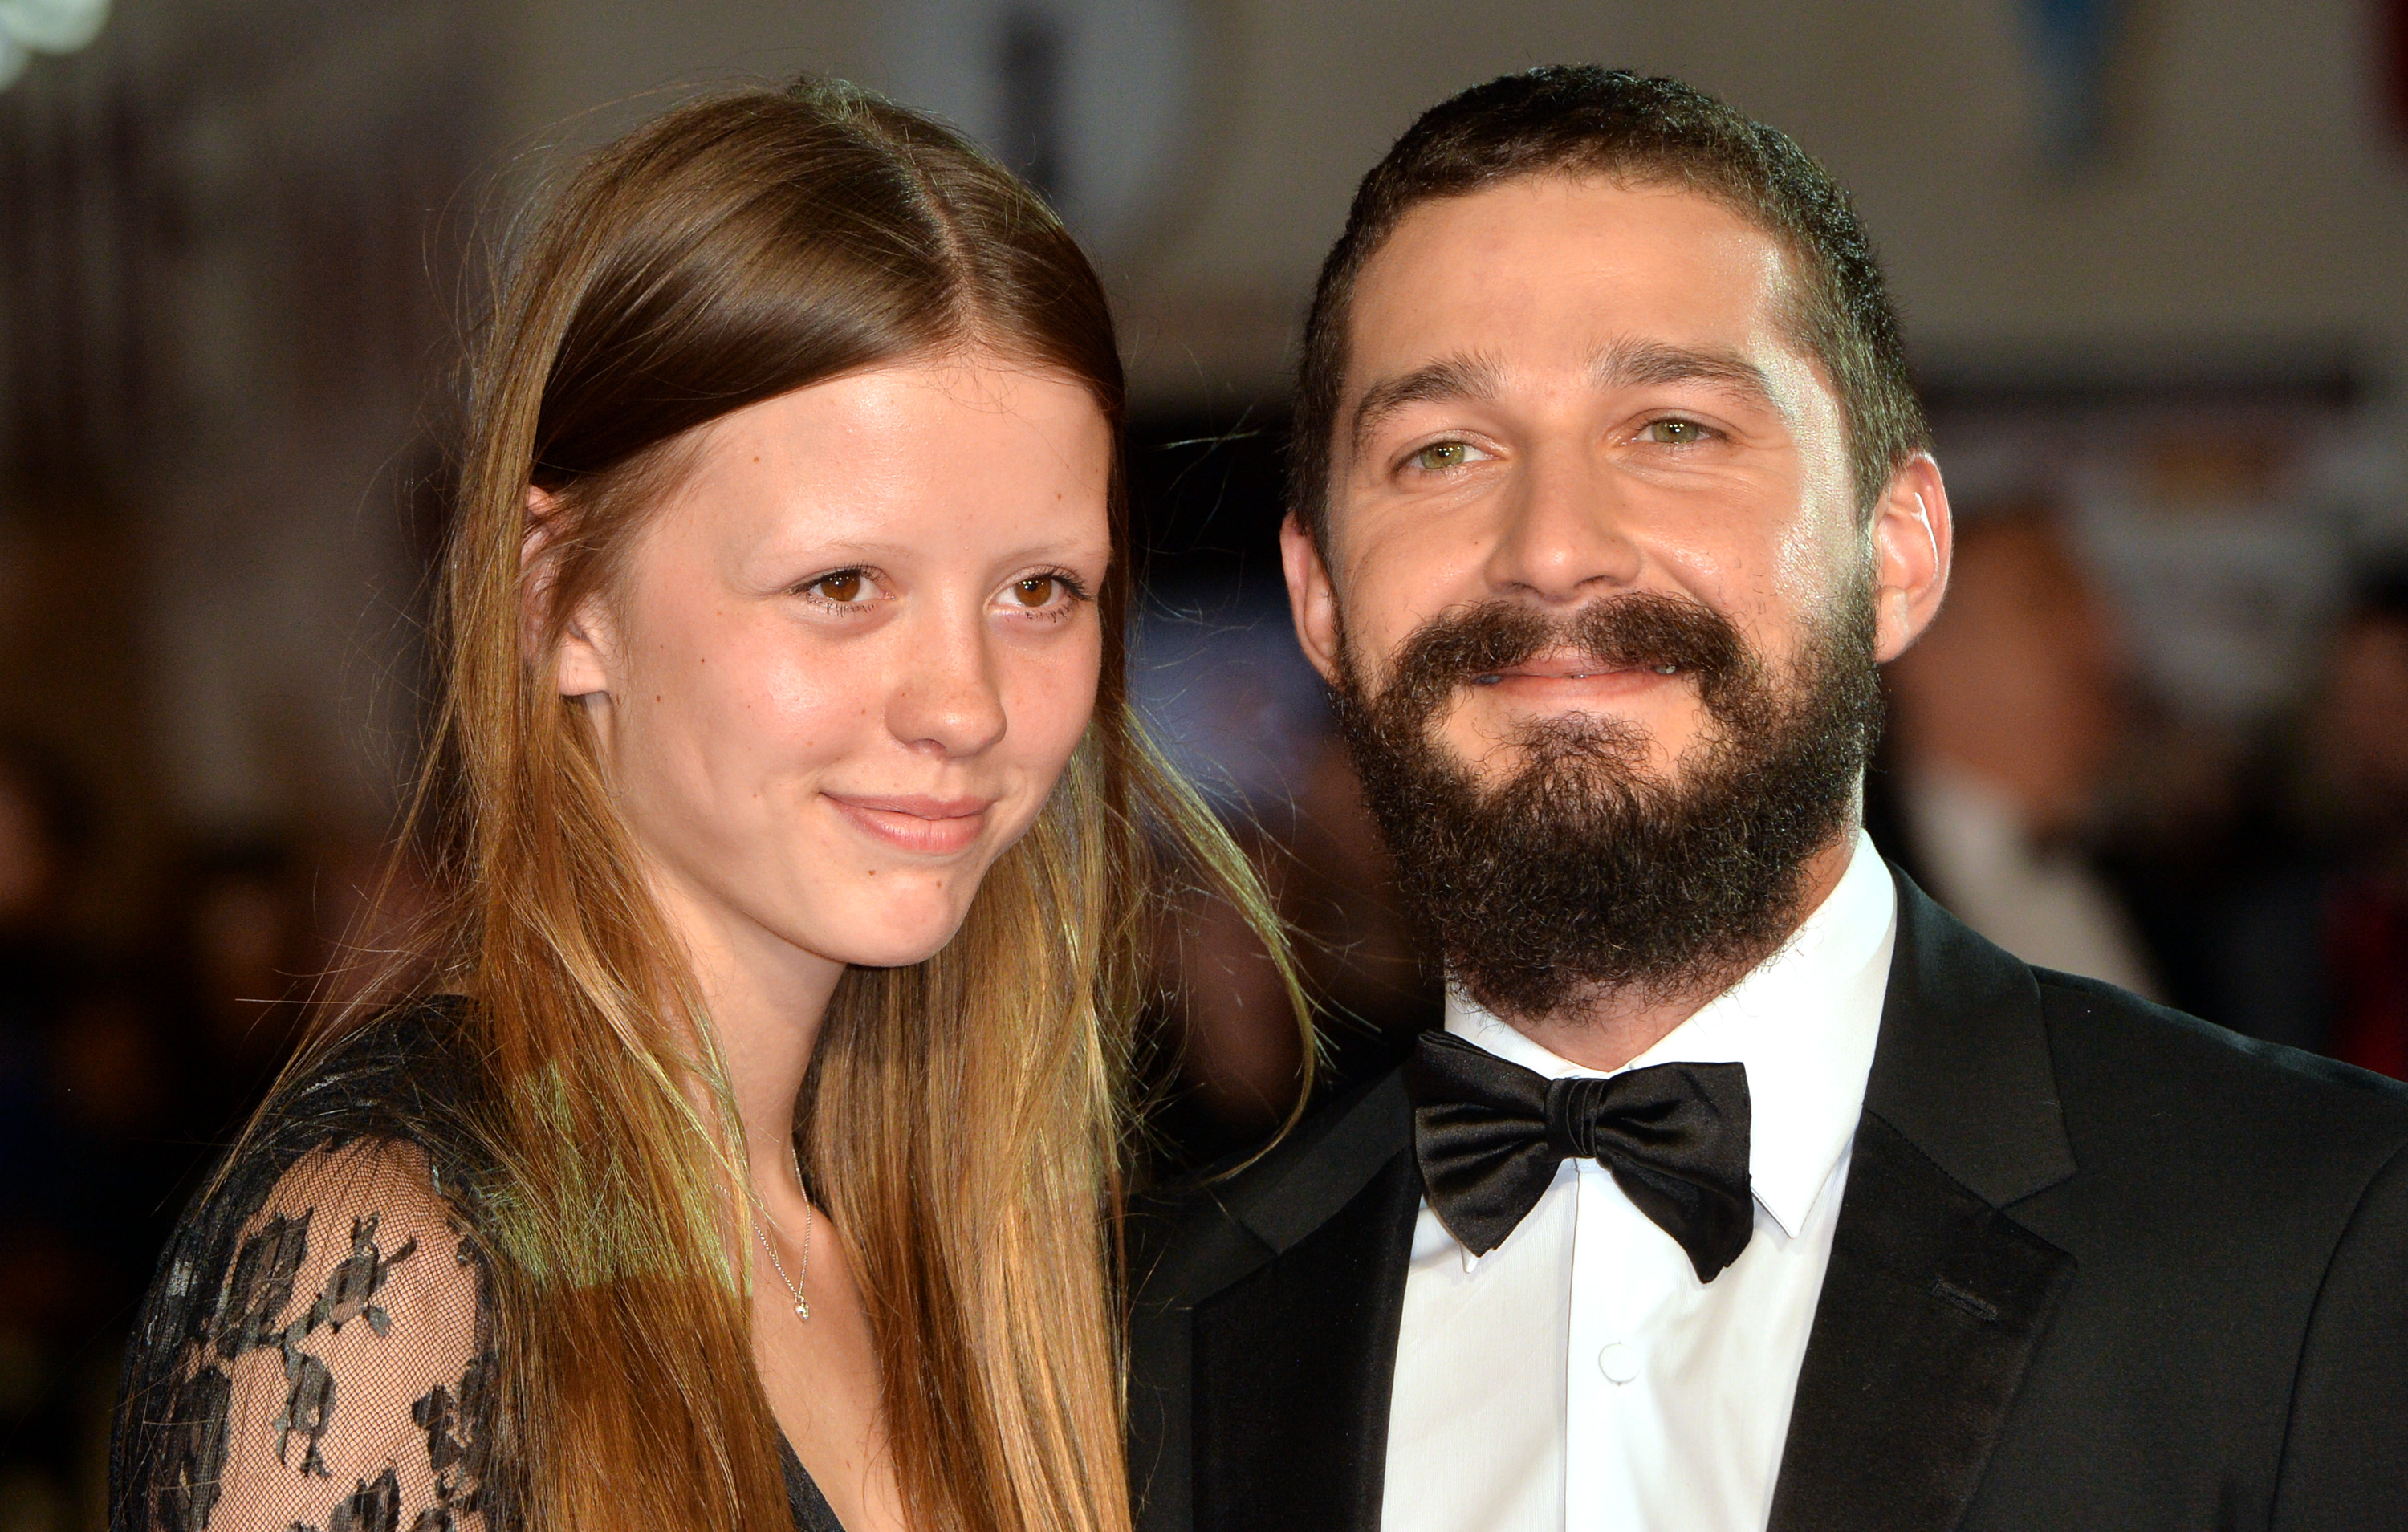 Apparently Shia LaBeouf didn't REALLY get married — here's what we know